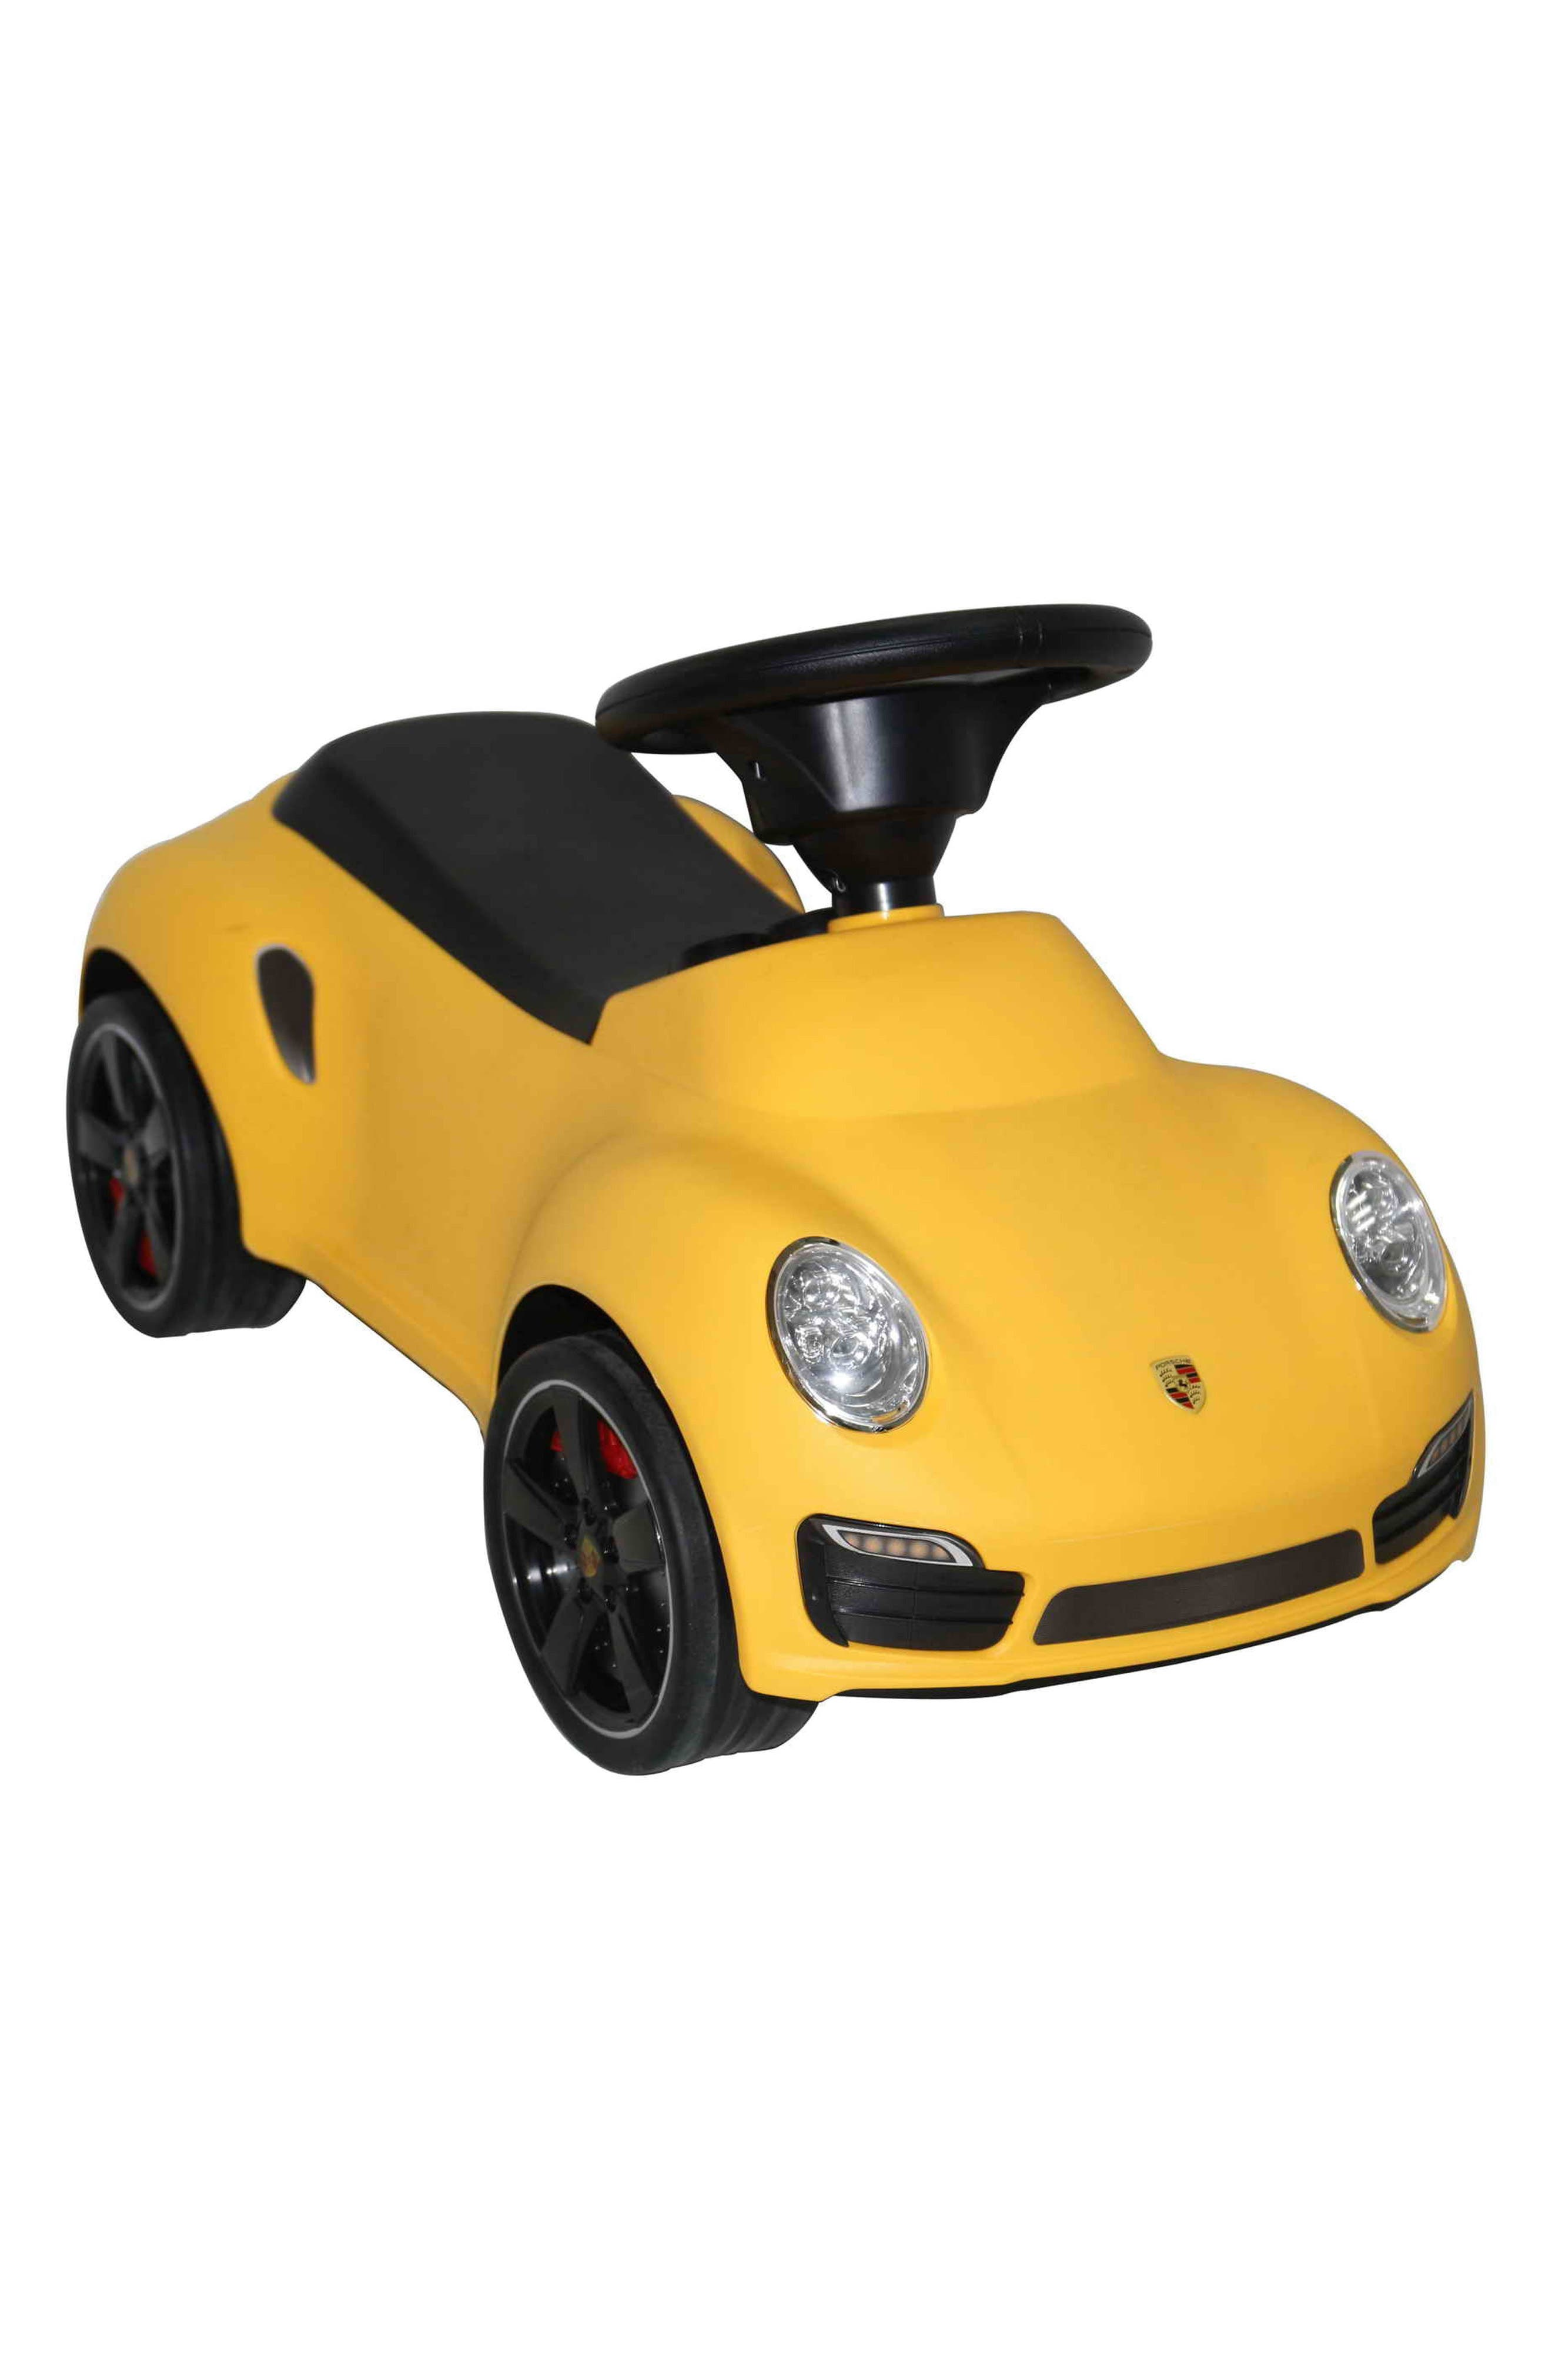 Best Ride on Cars Porsche Turbo 911 Ride-On Push Car